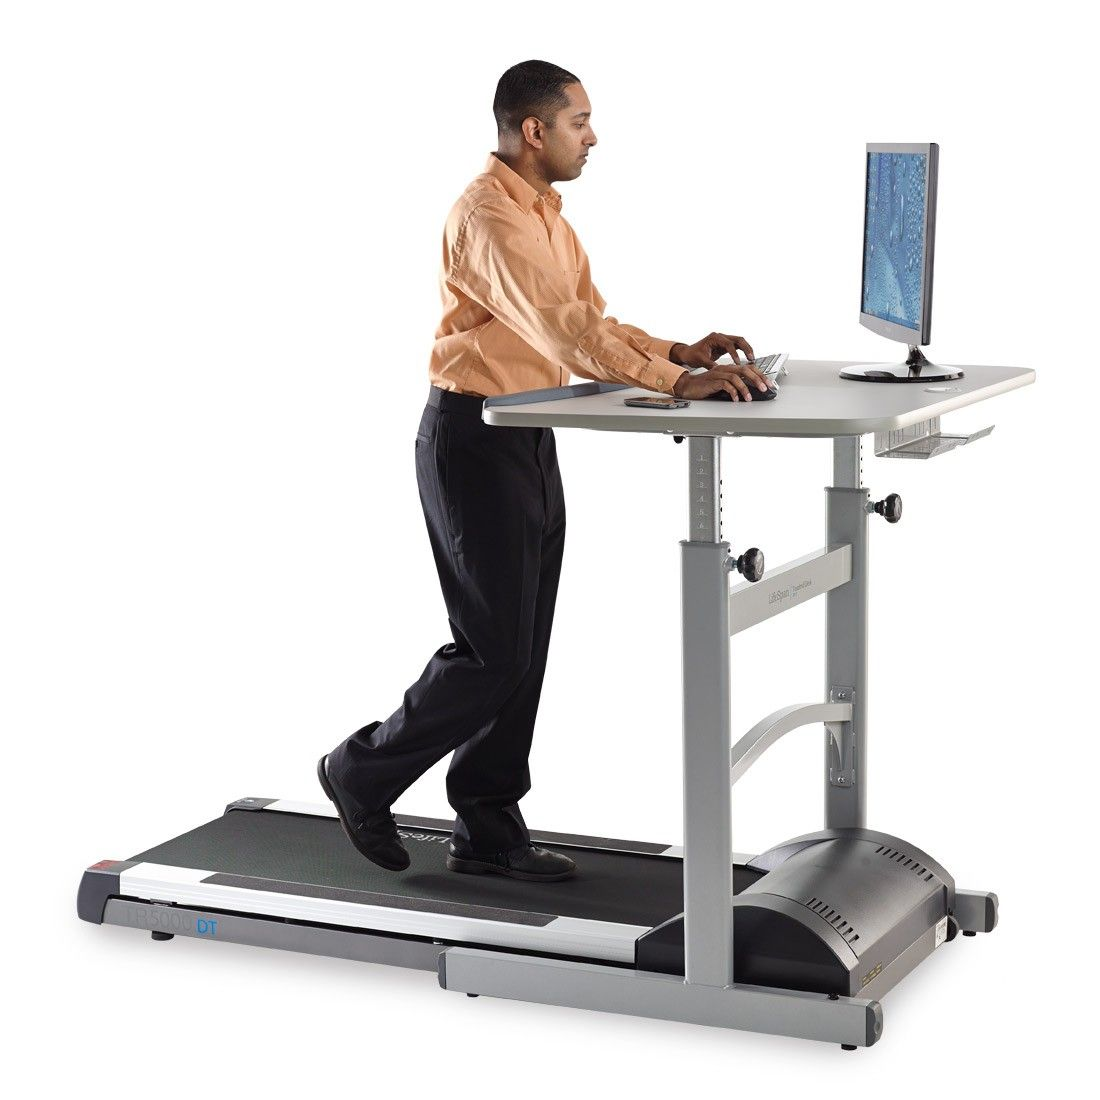 Lifespan fitness tr5000dt5 treadmill desk with manual